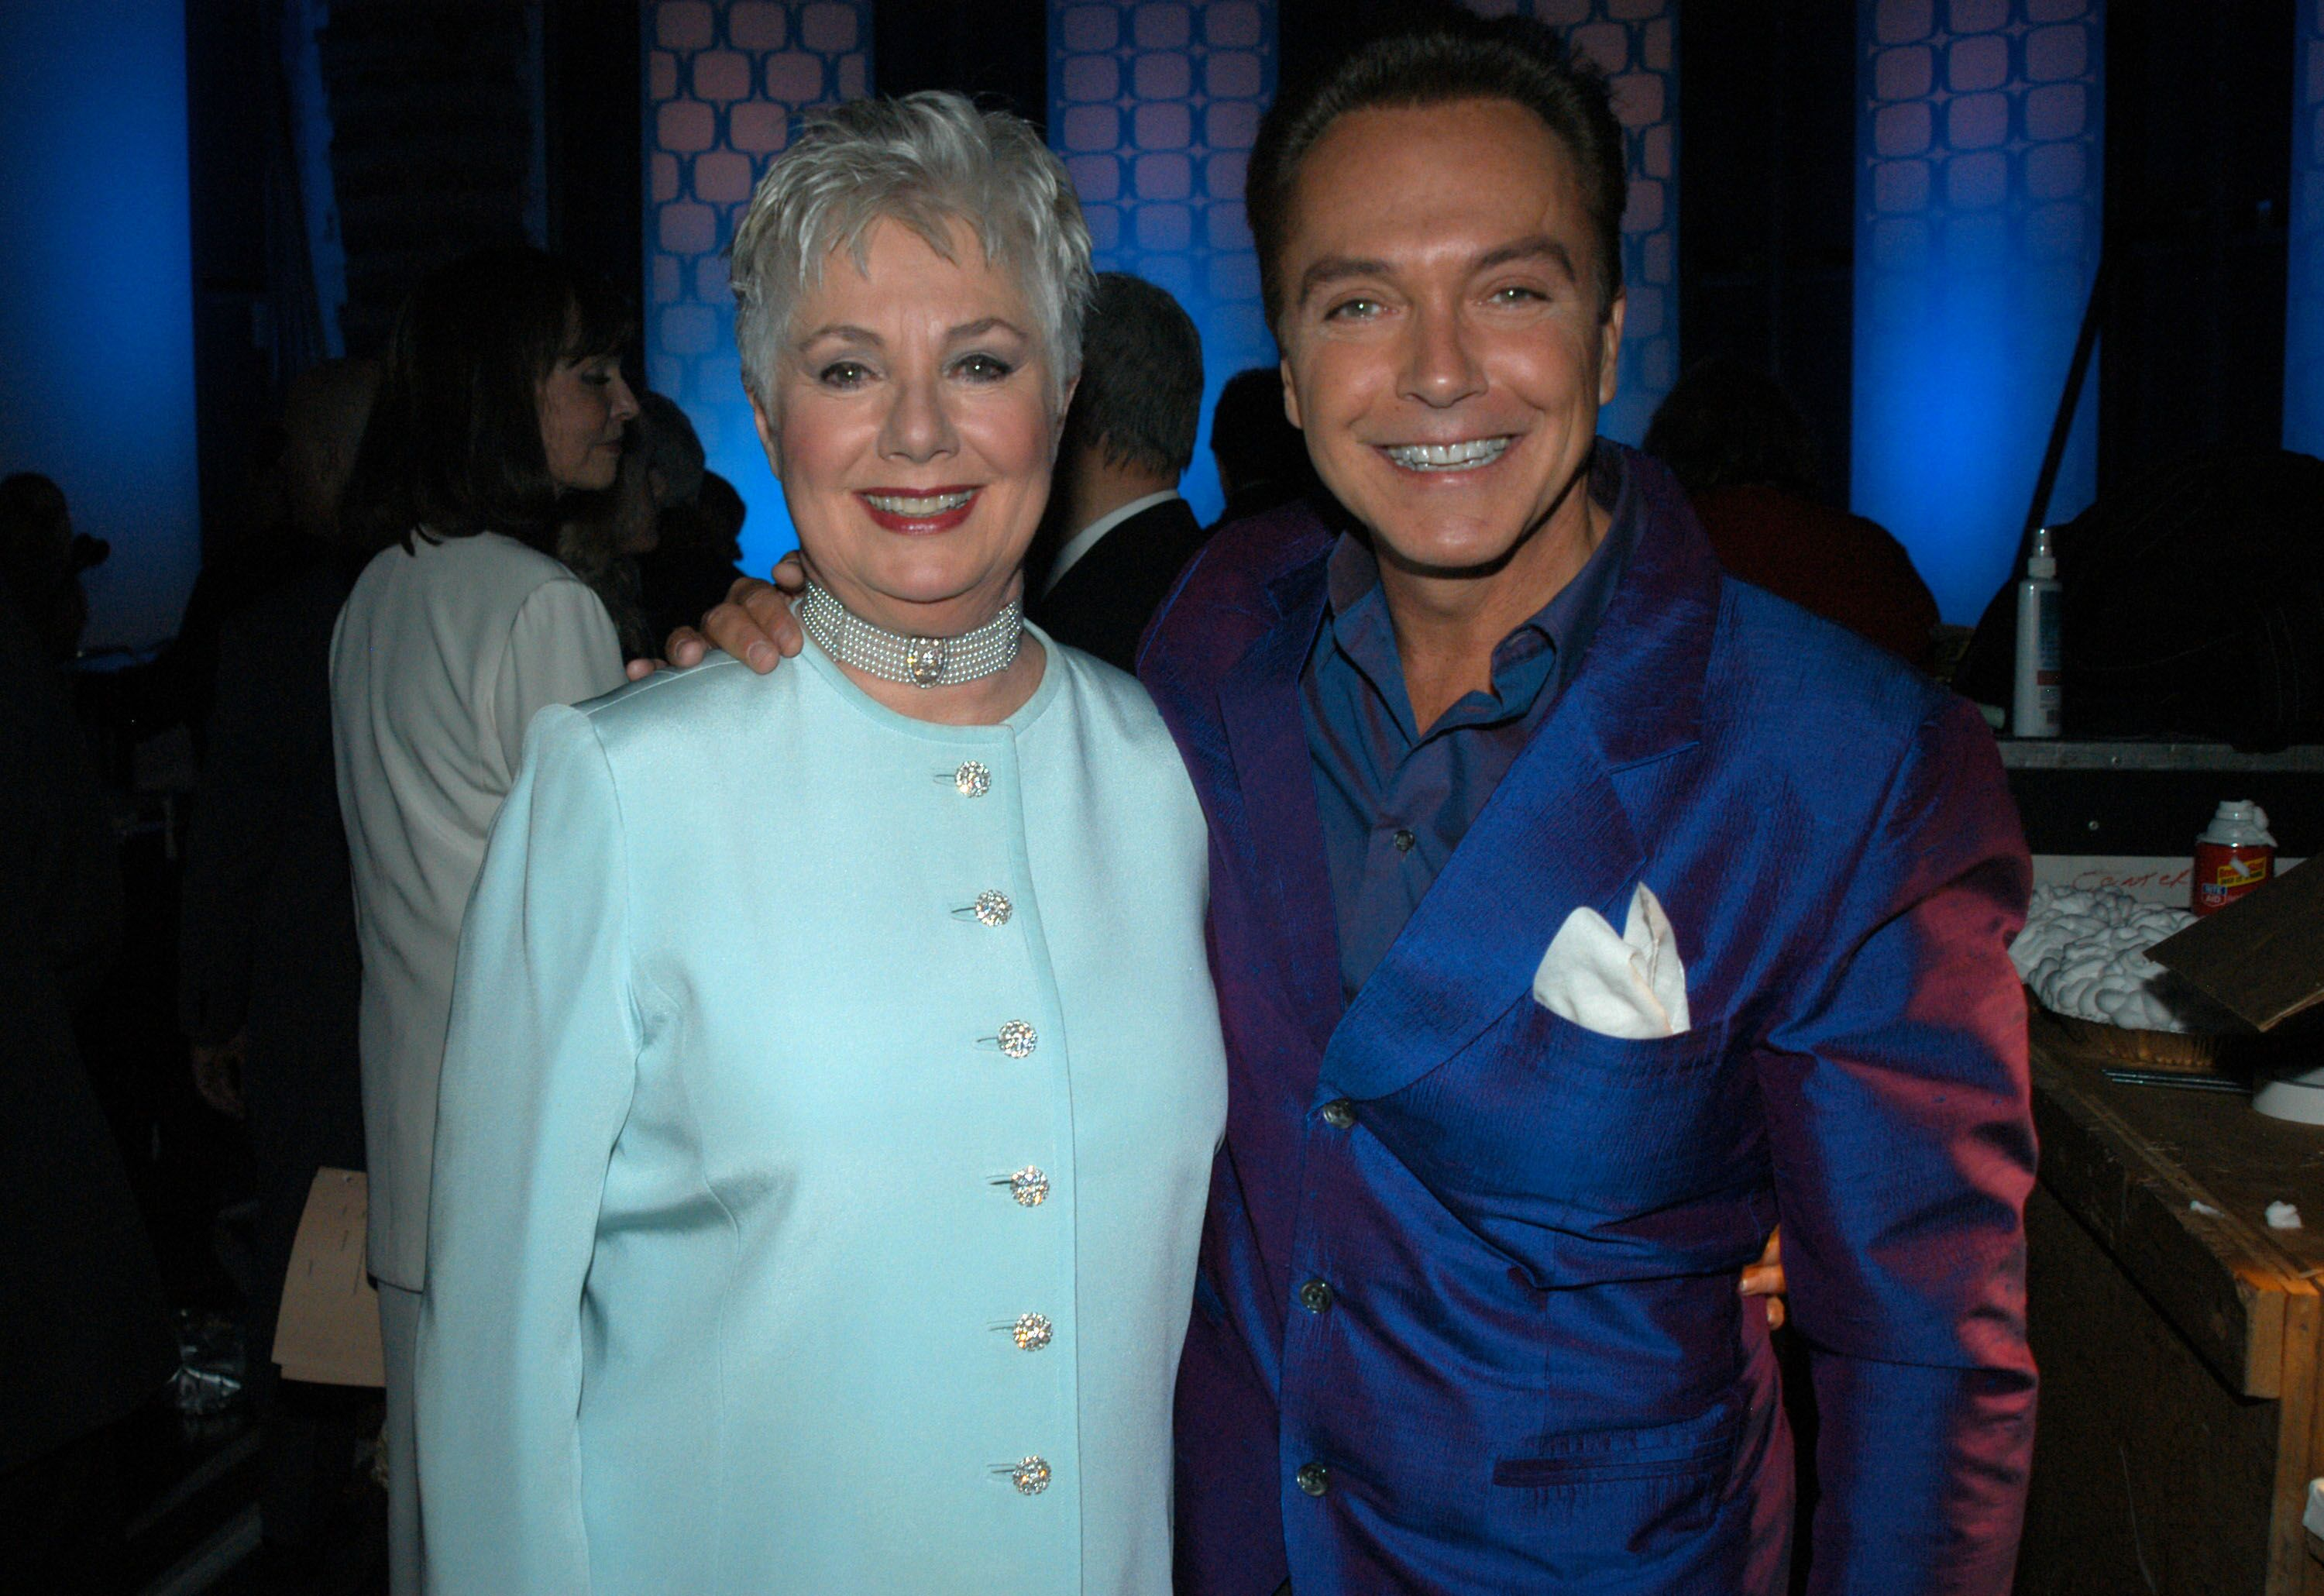 Shirley Jones and David Cassidy at Hollywood Palladium in CA, United States on March 02, 2003. | Photo: Getty Images